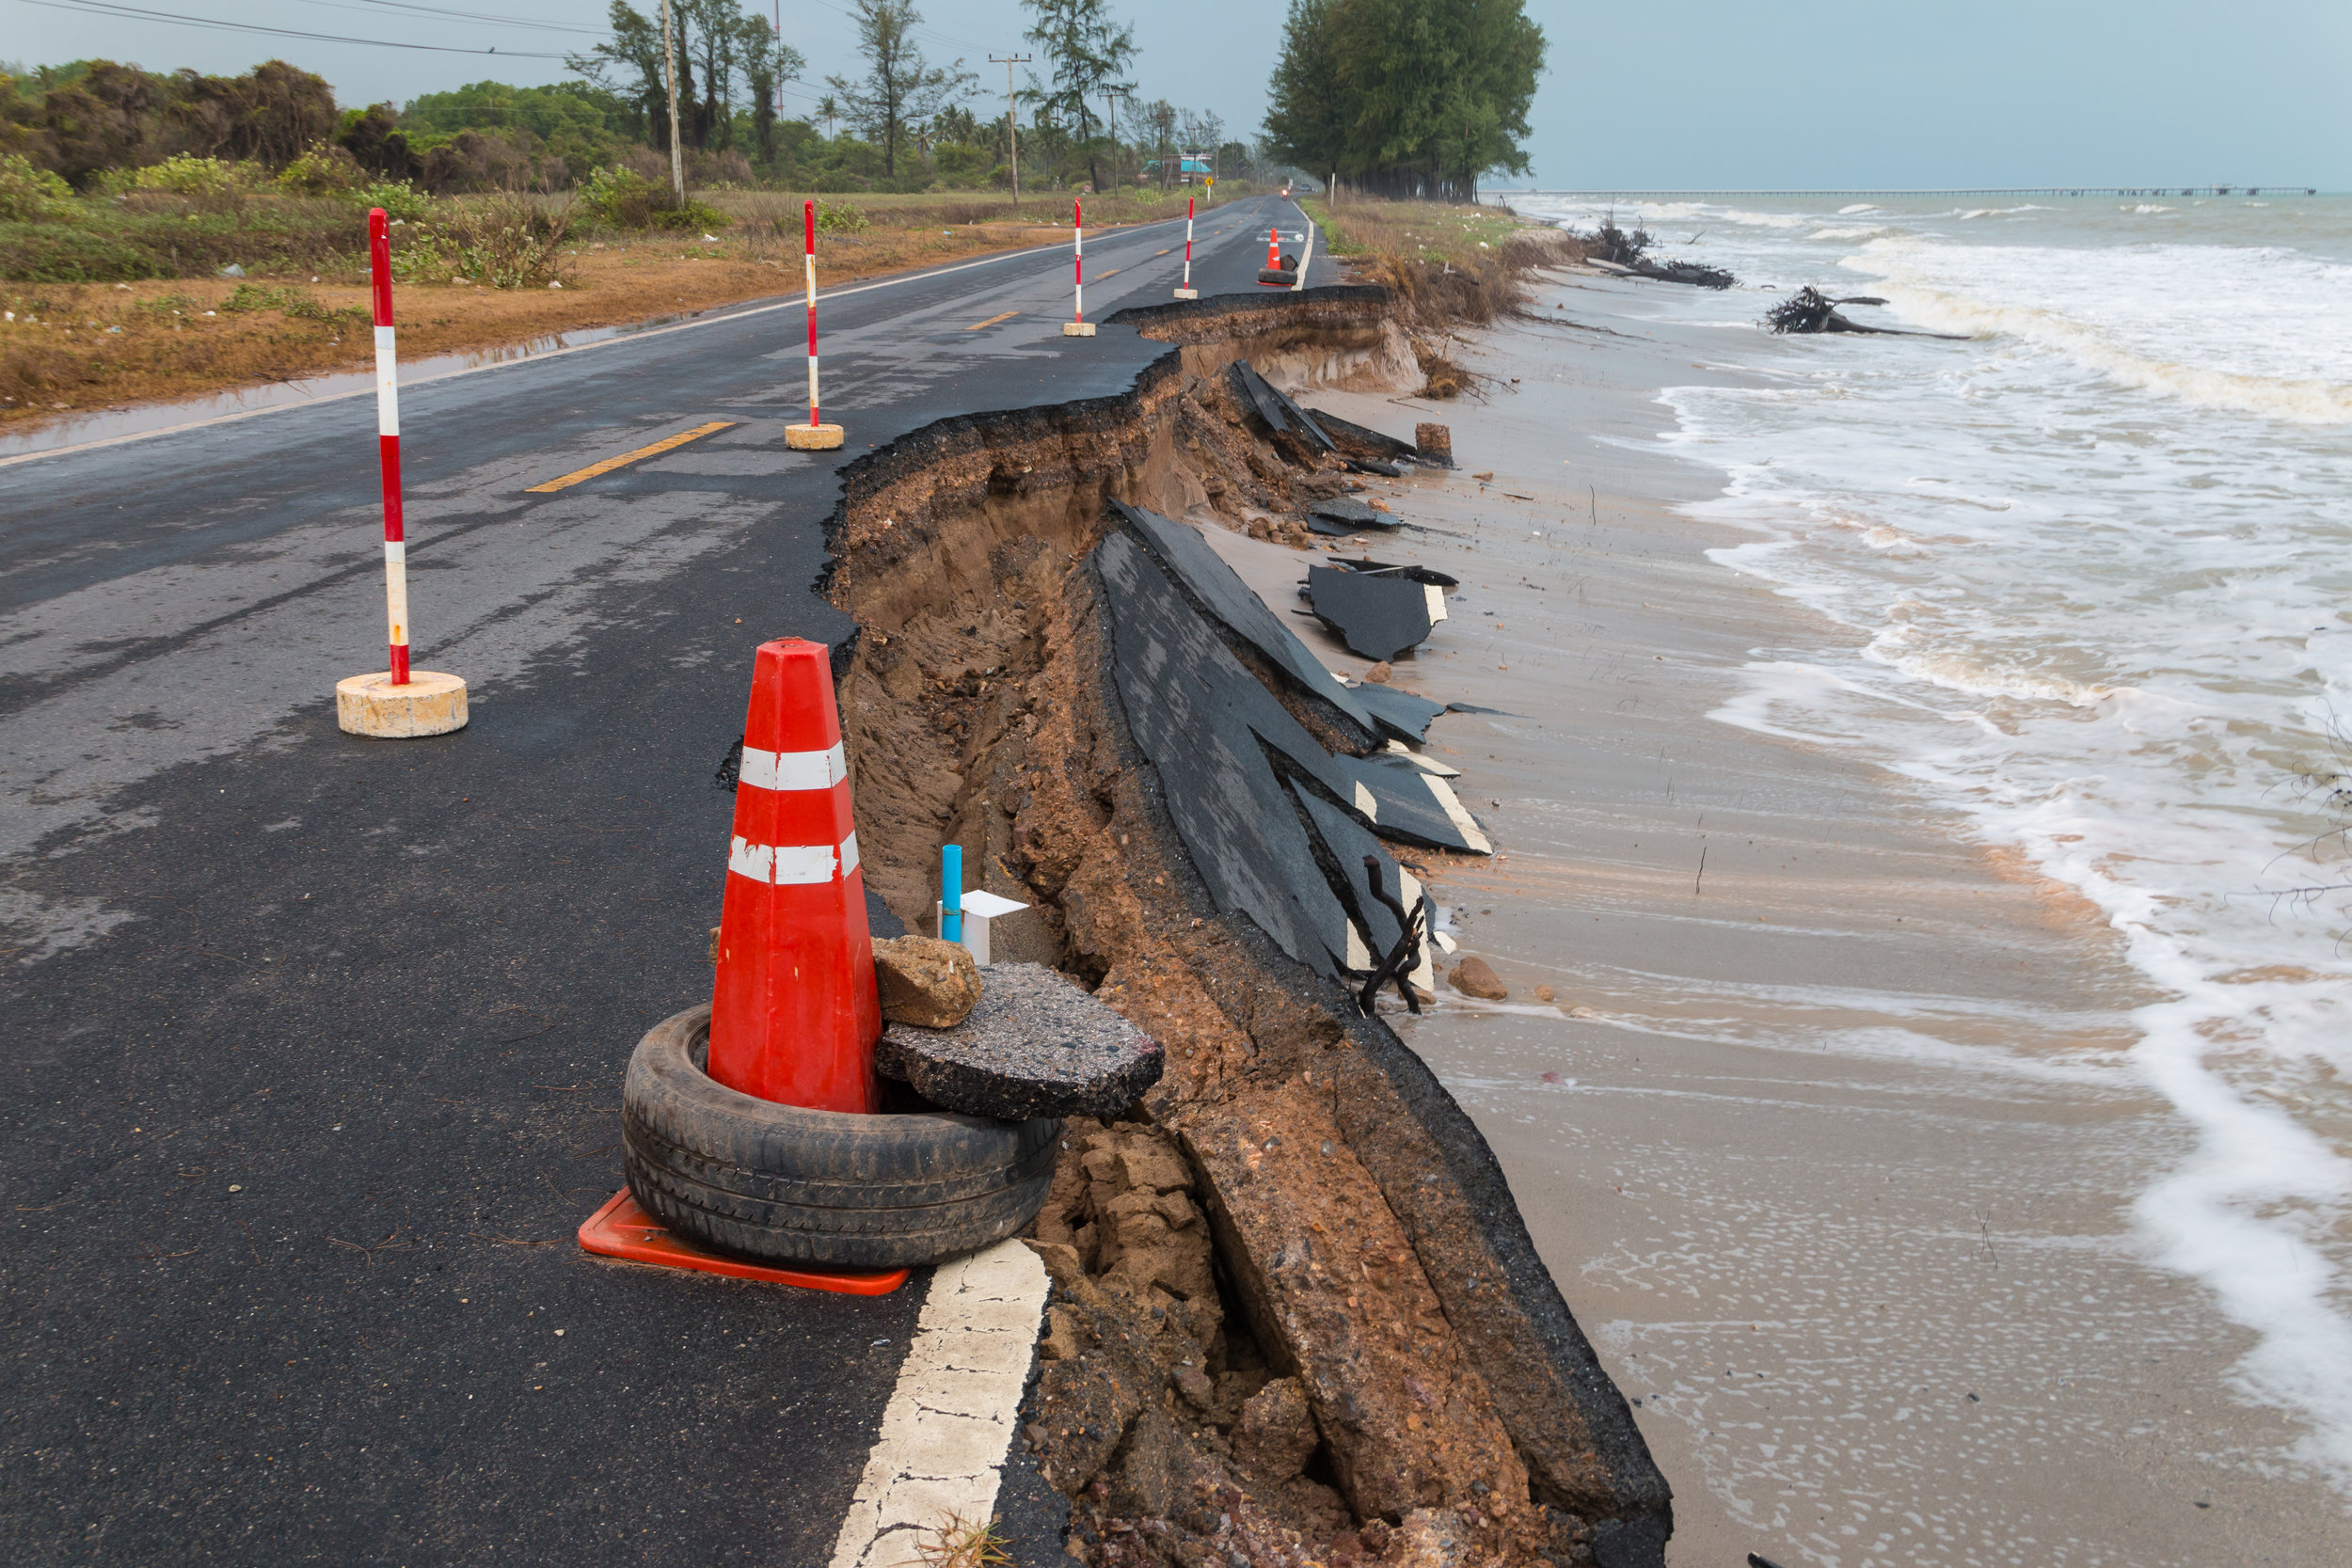 40% of US population lives in coastal counties where infrastructure is at greatest risk from climate change. Credit: Shutterstock.com